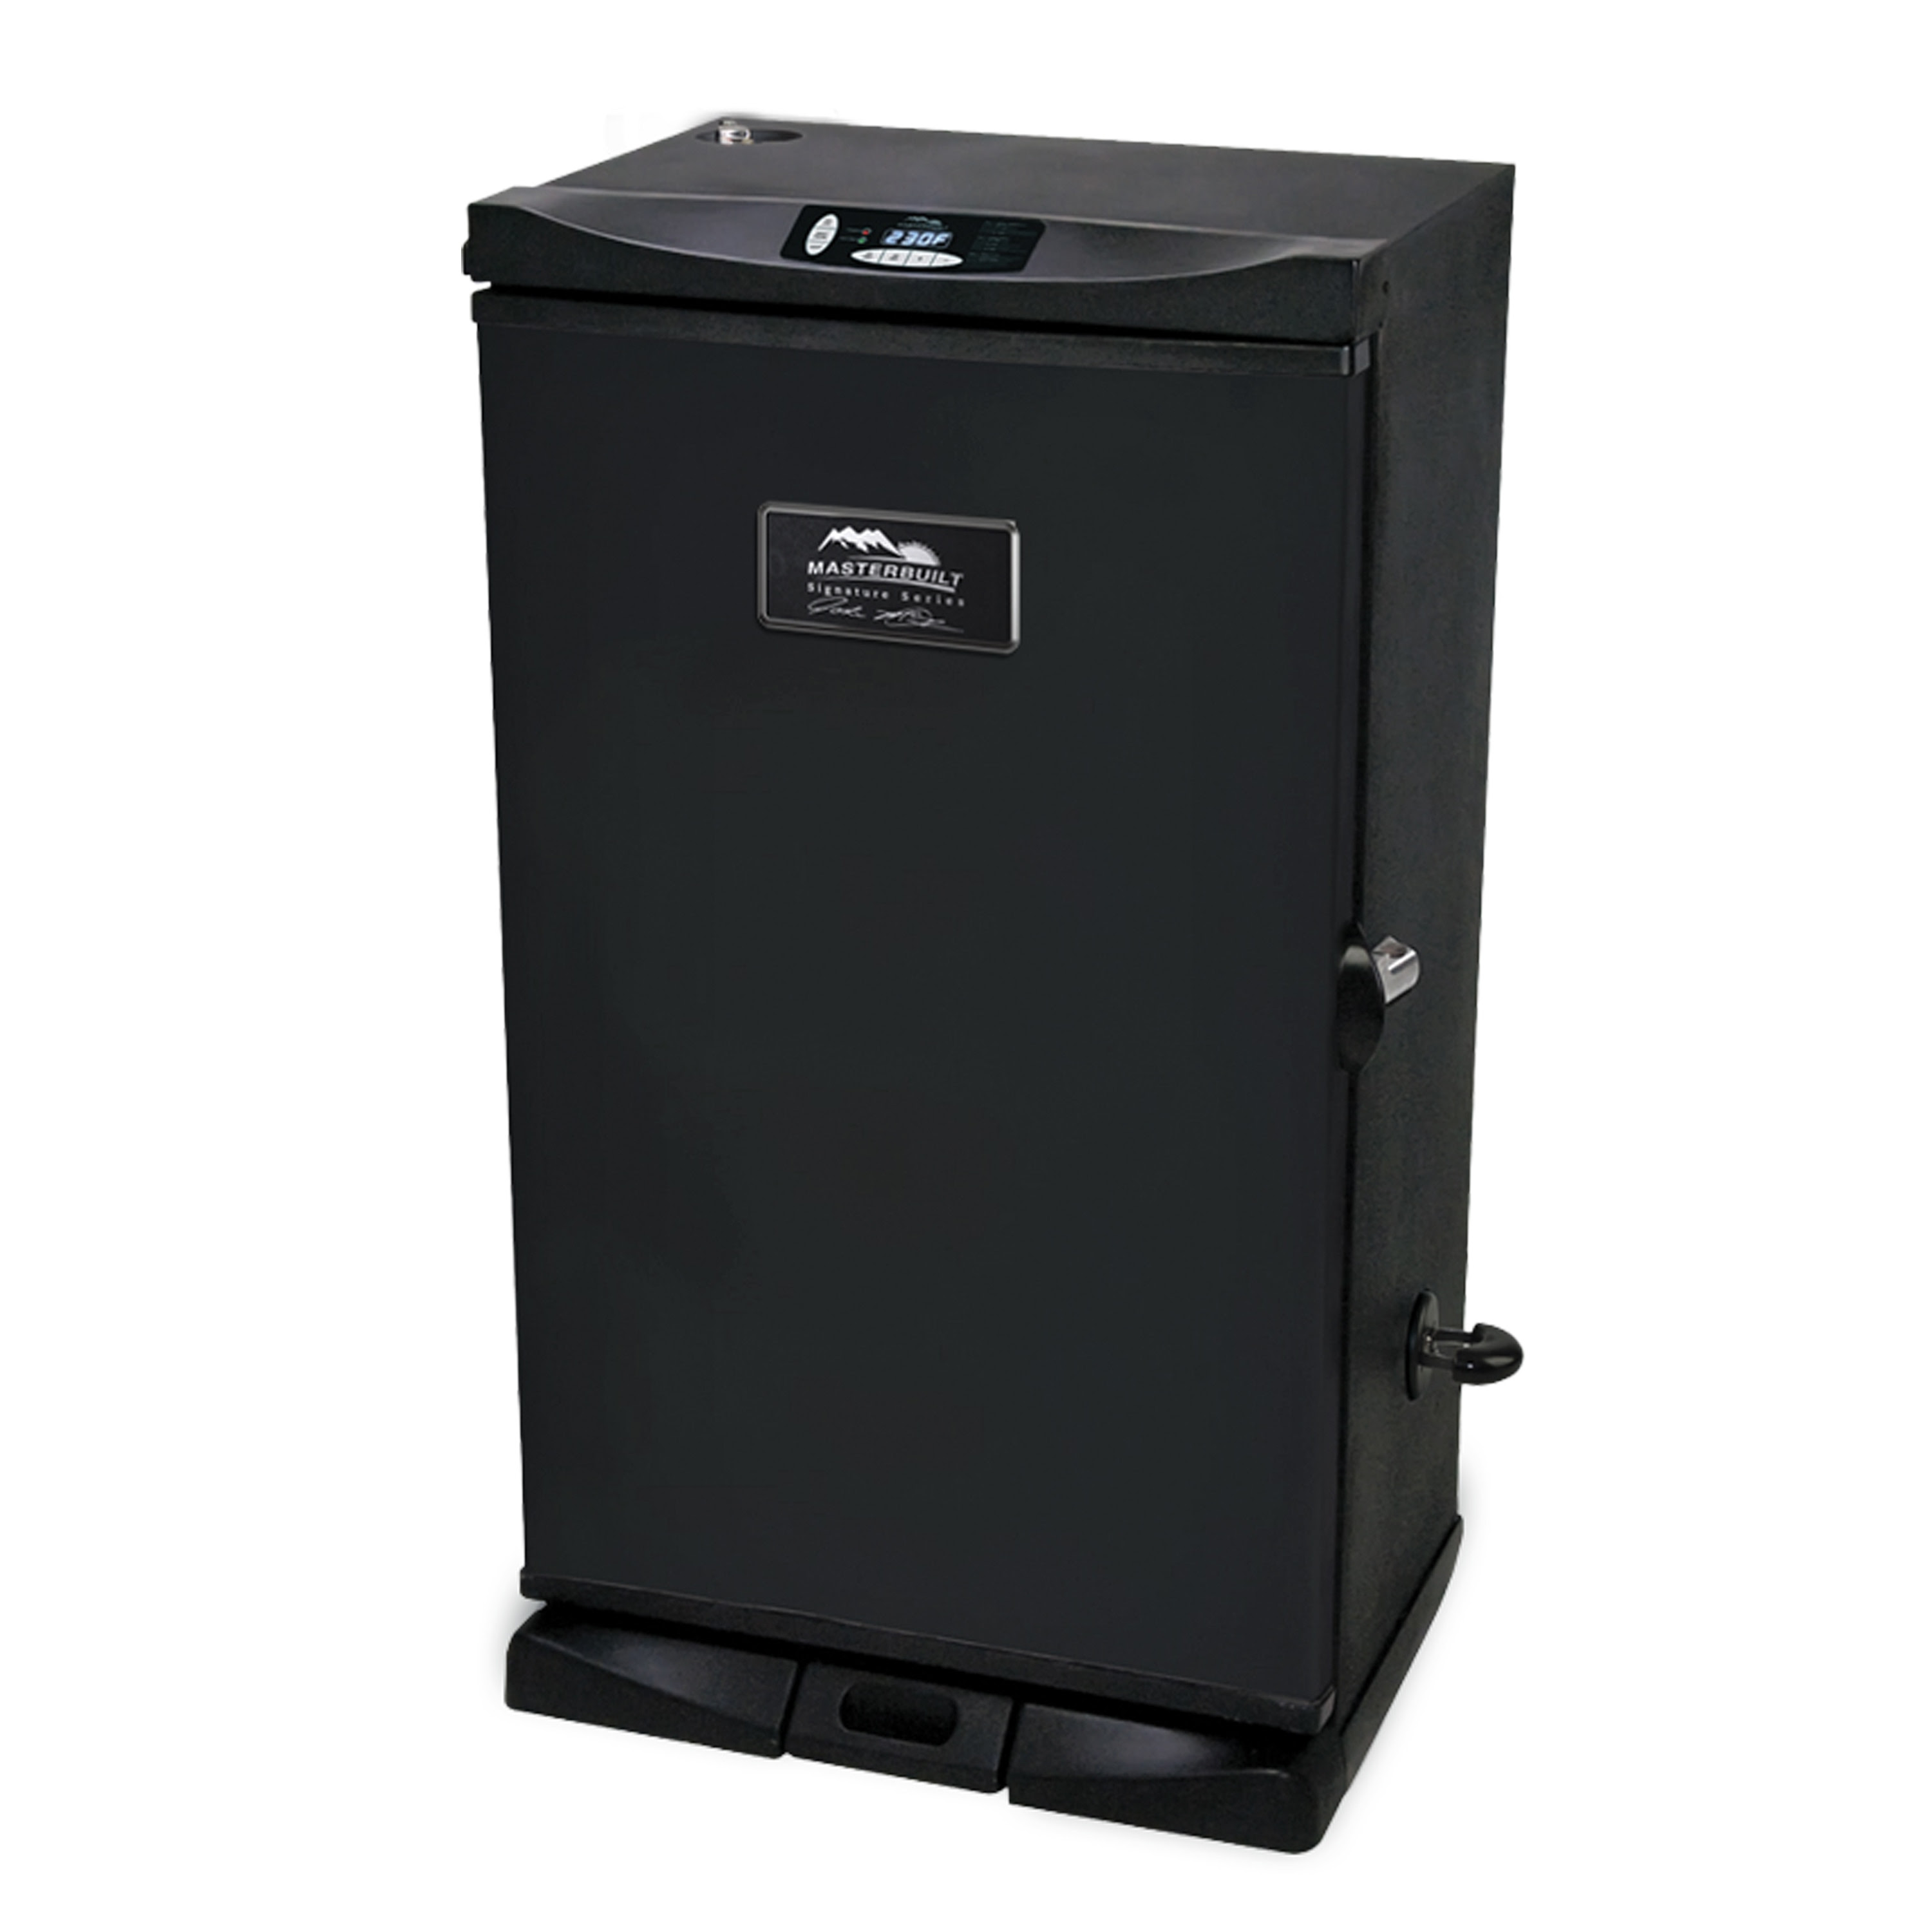 Masterbuilt Jmss 975 Sq In Black Electric Smoker In The Electric Smokers Department At Lowes Com